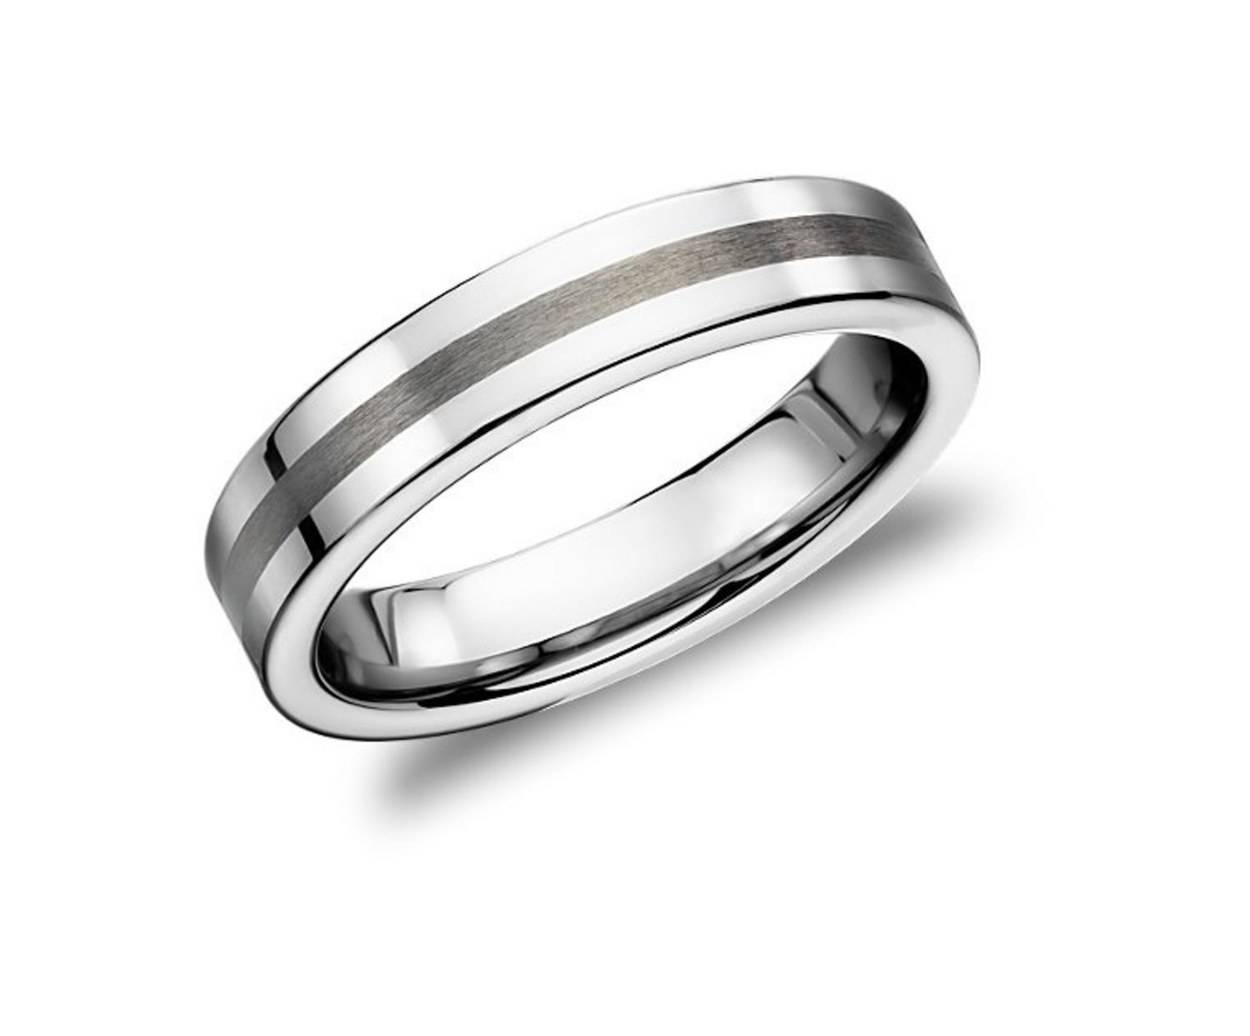 15 Men's Wedding Bands Your Groom Won't Want To Take Off | Glamour Inside Hipster Wedding Bands (View 2 of 15)